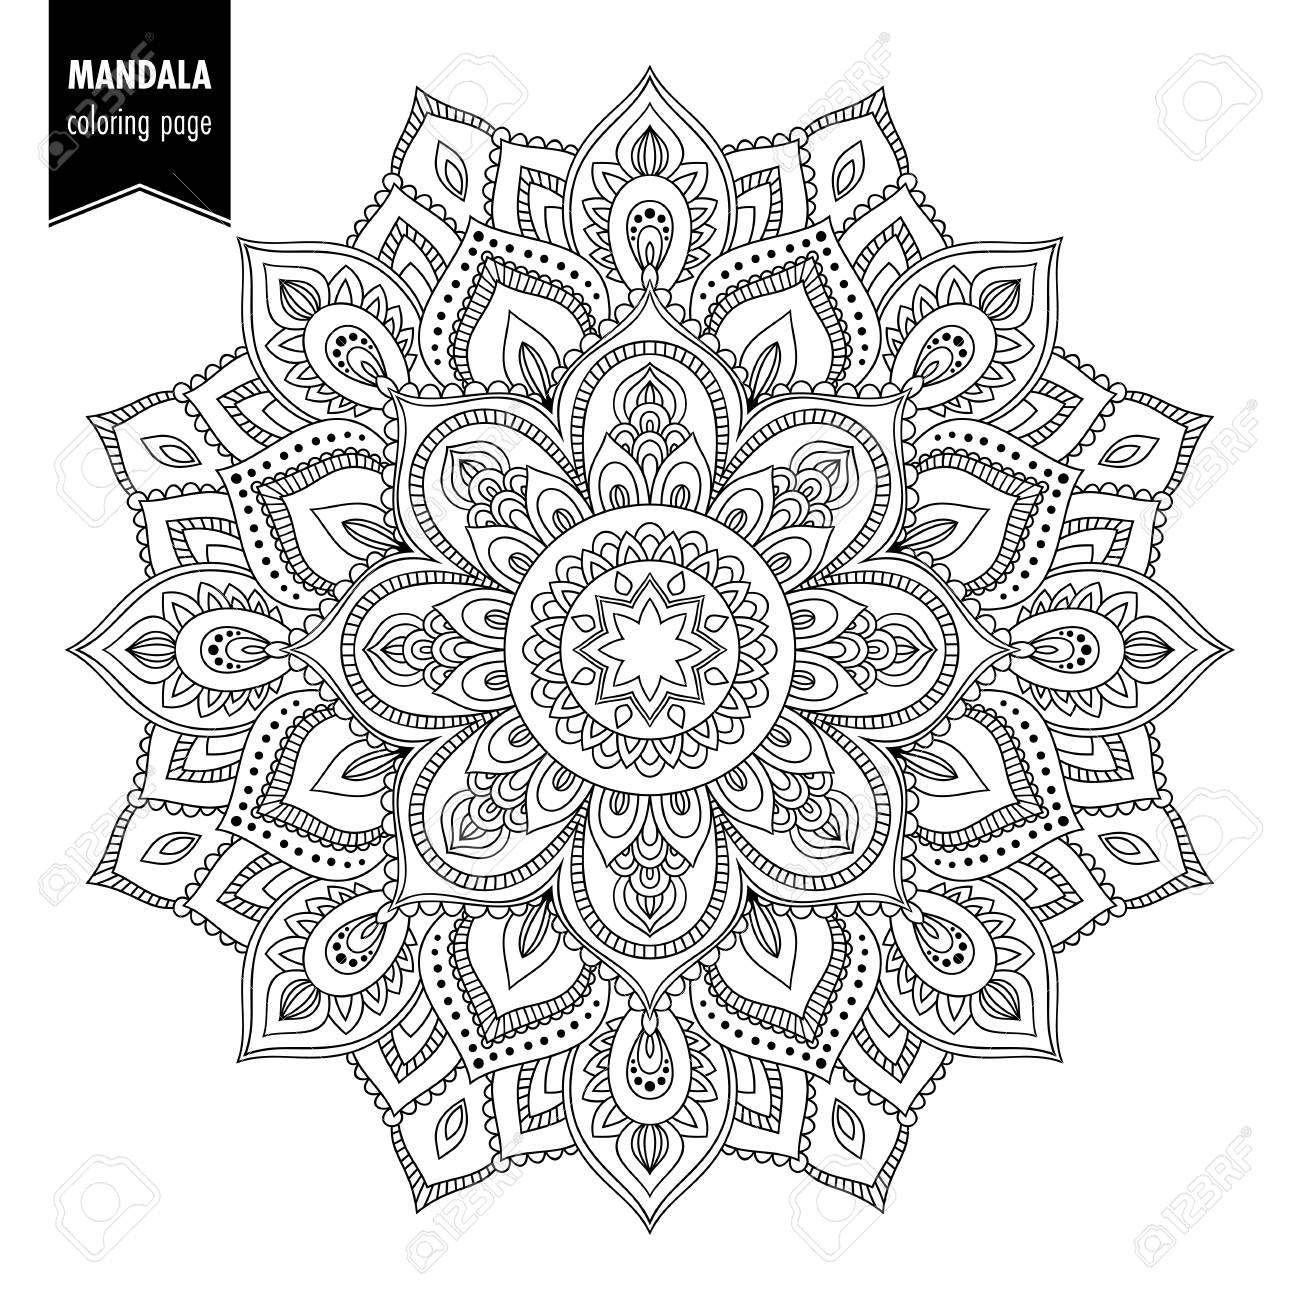 Monochrome ethnic mandala design. Anti-stress coloring page for adults. Hand drawn vector illustration - 90041352